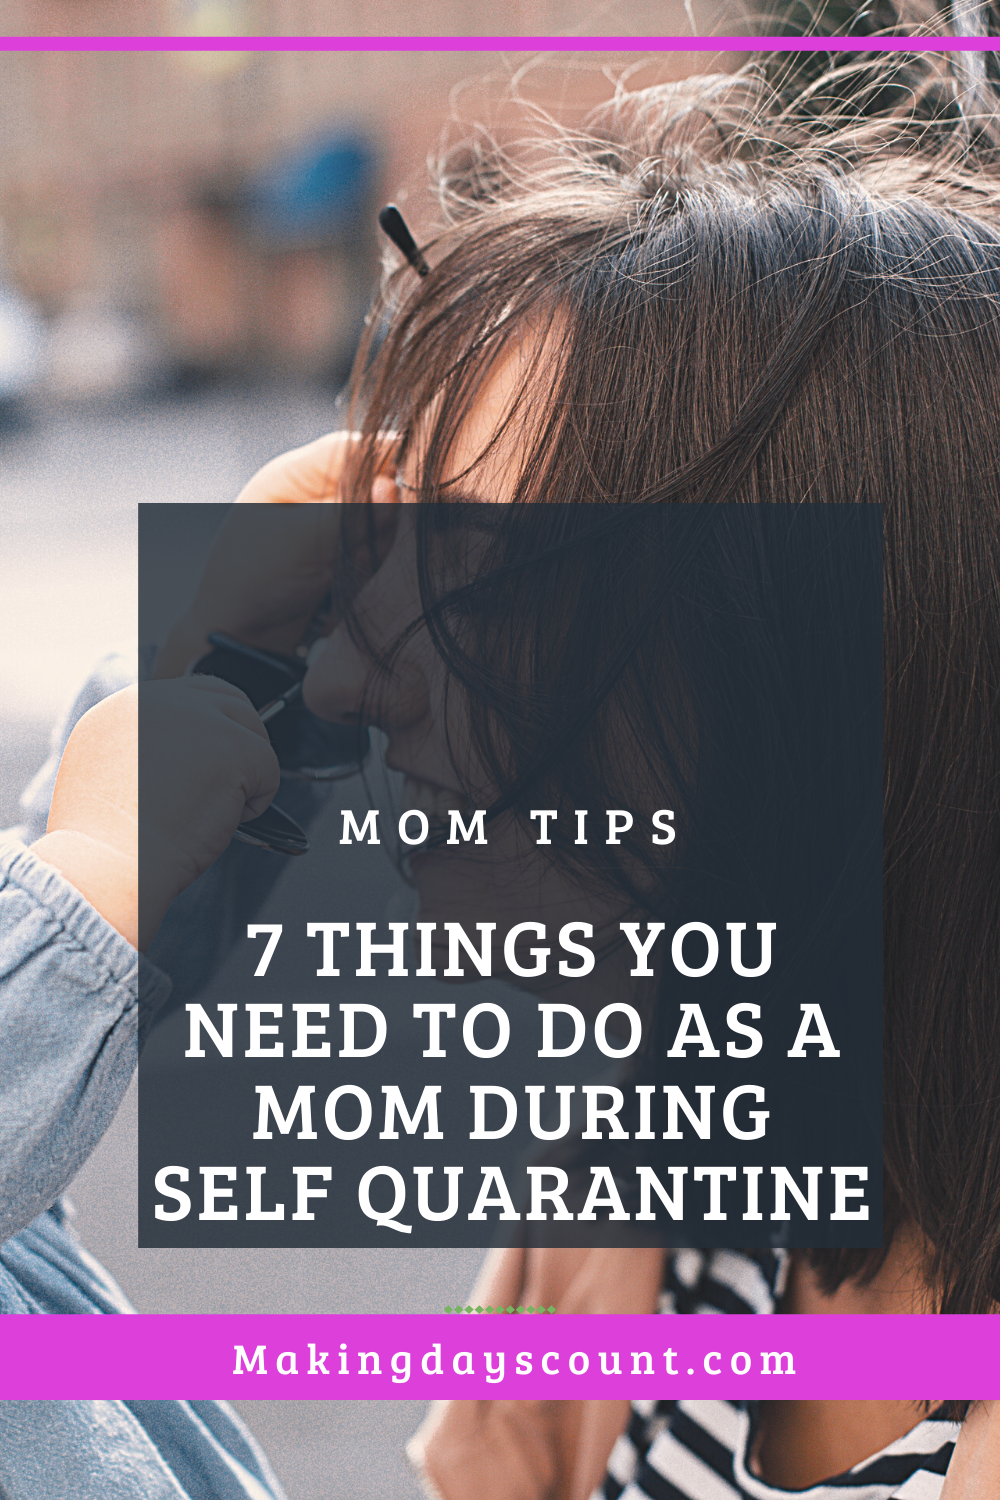 7 things to do as a mom